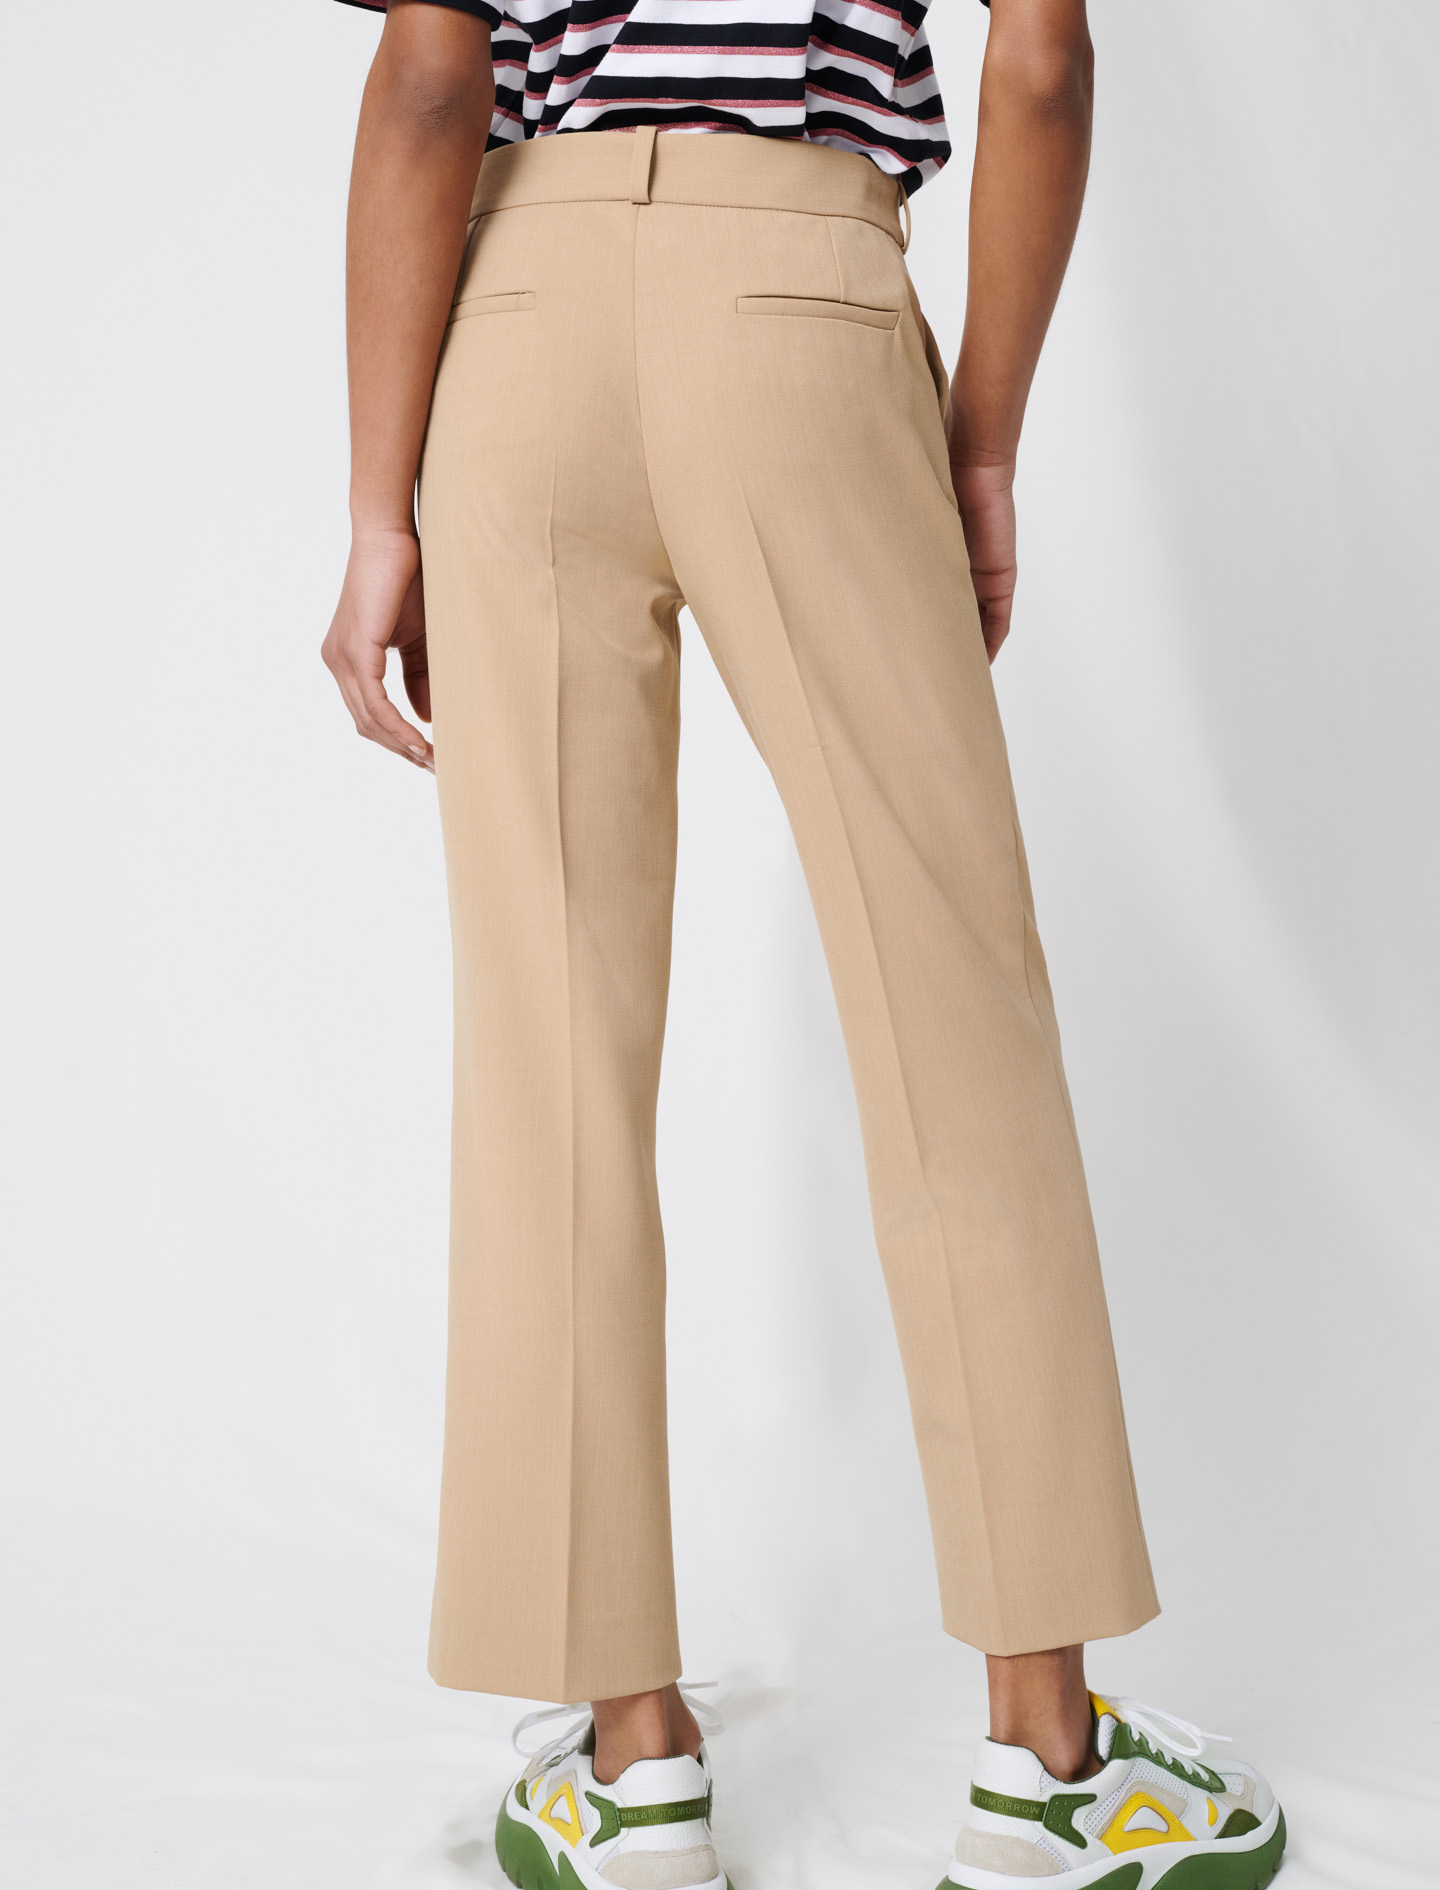 Beige tailored trousers - Nude